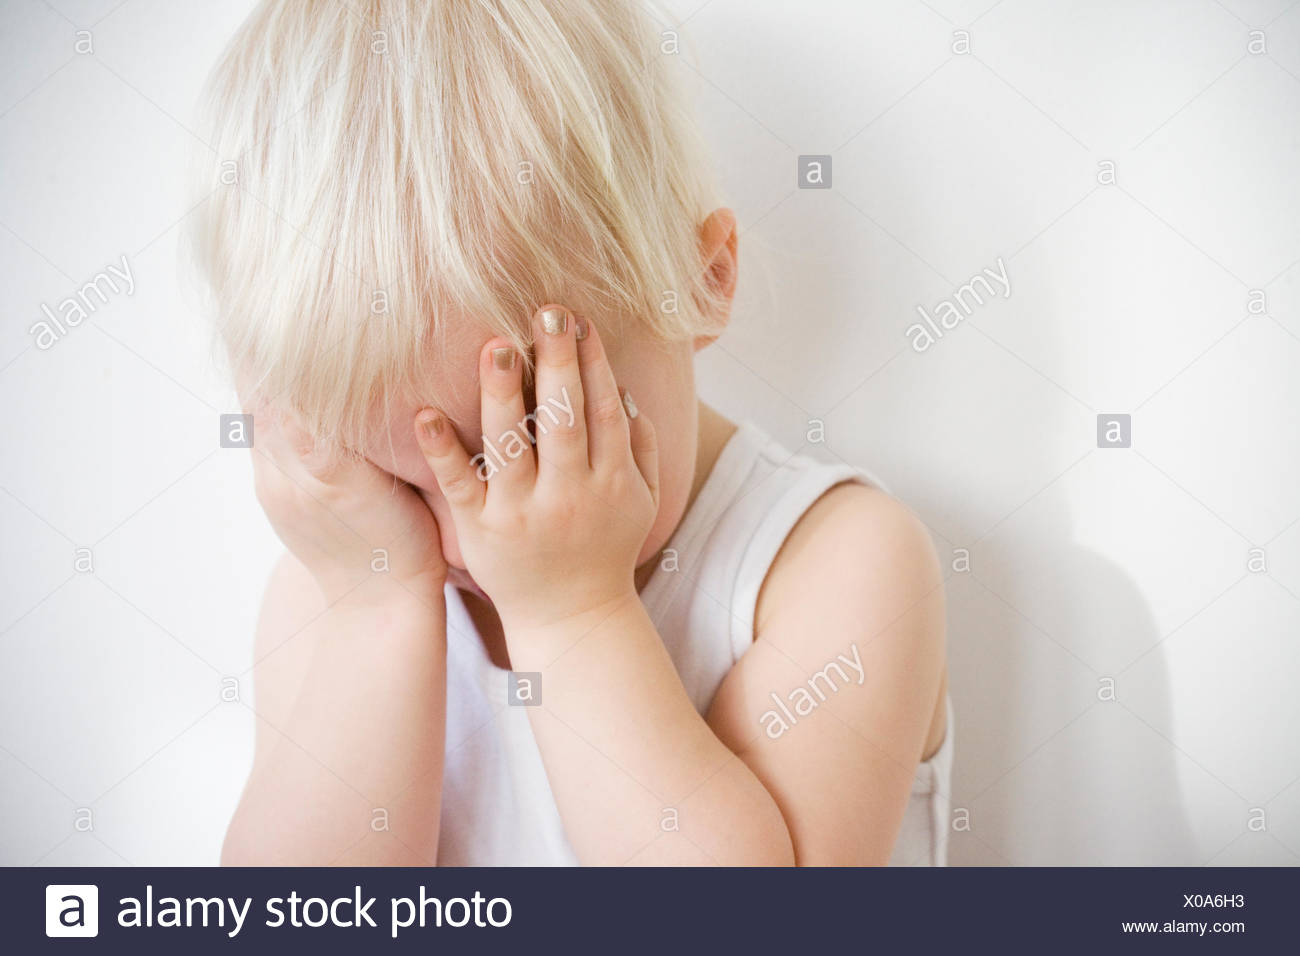 A blond child against white, Sweden. - Stock Image